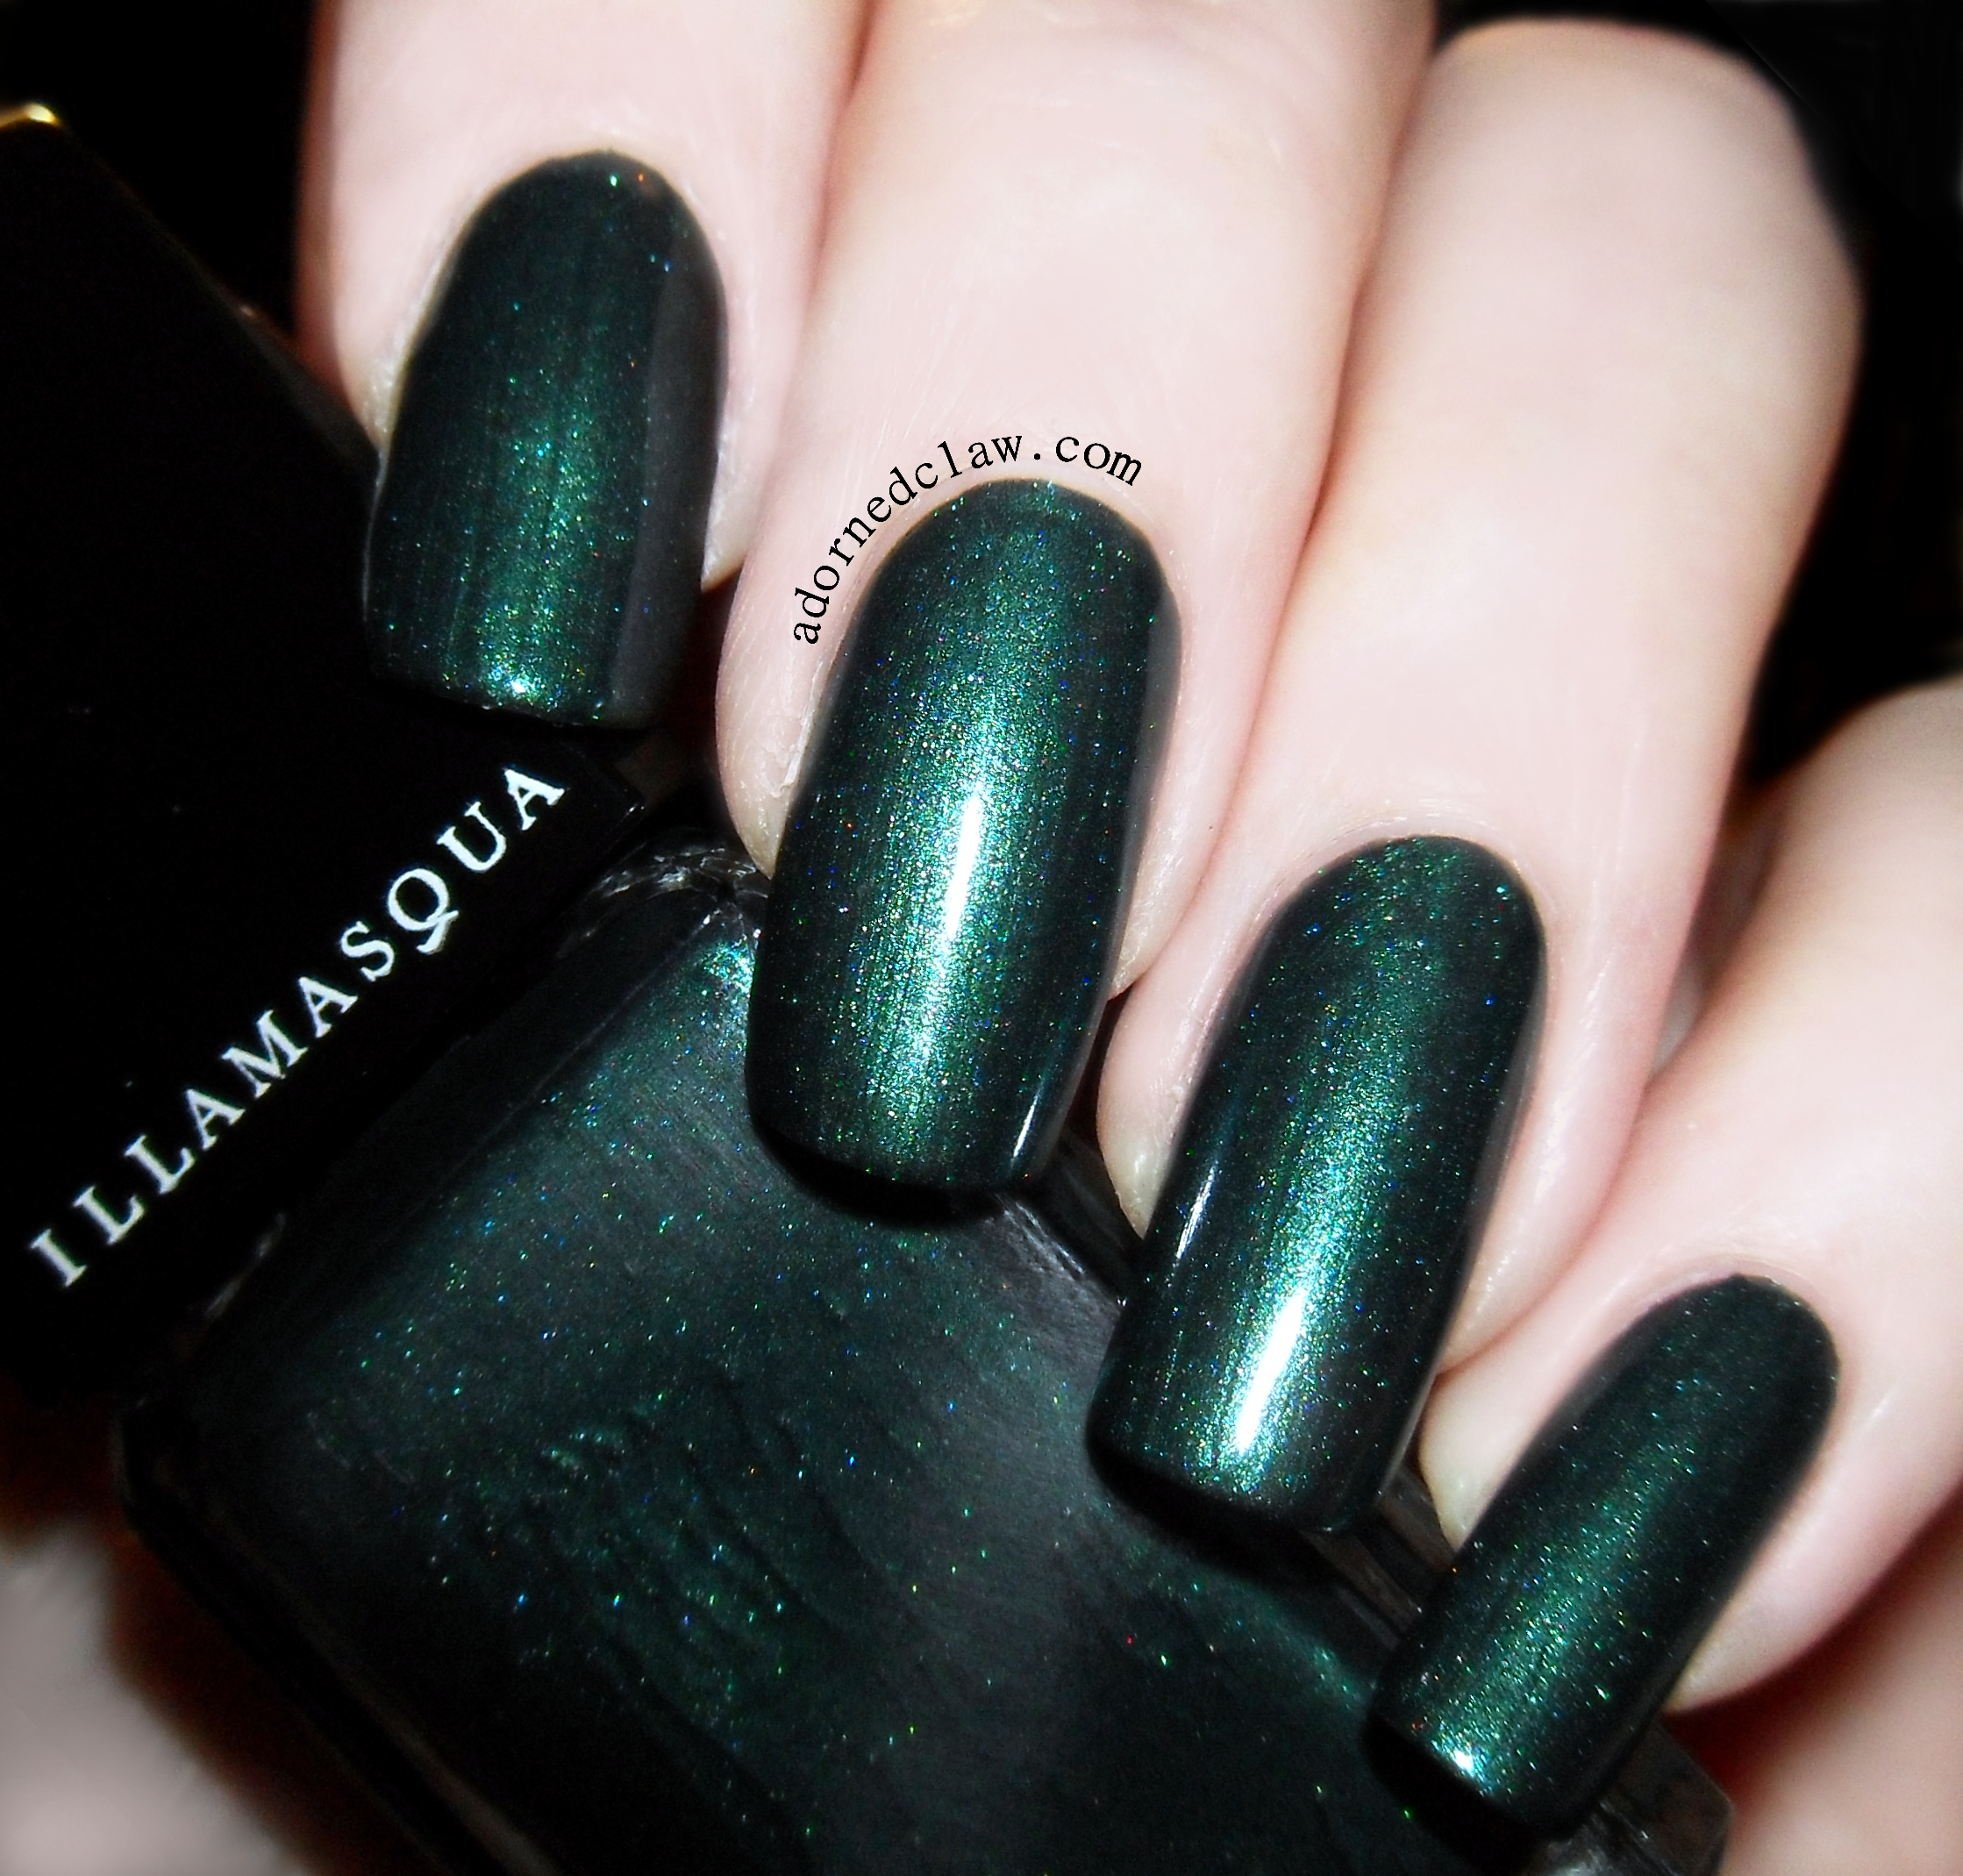 Illamasqua Swatches The Adorned Claw